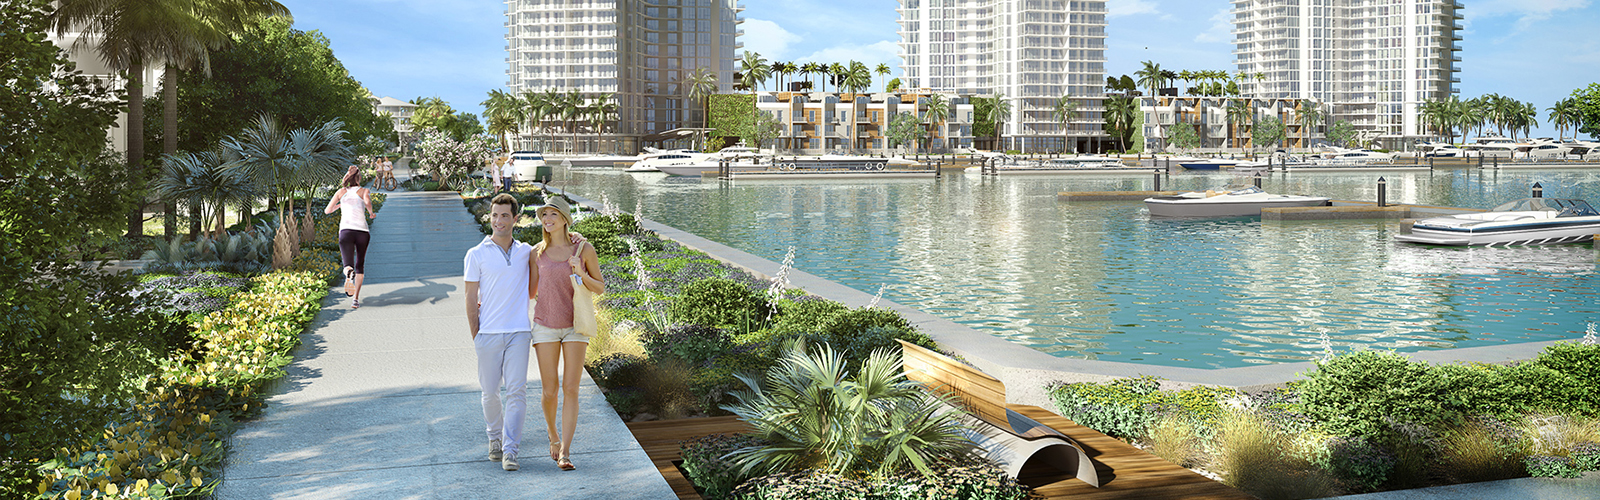 An artist's rendering of future retail development at the Westshore Marina District